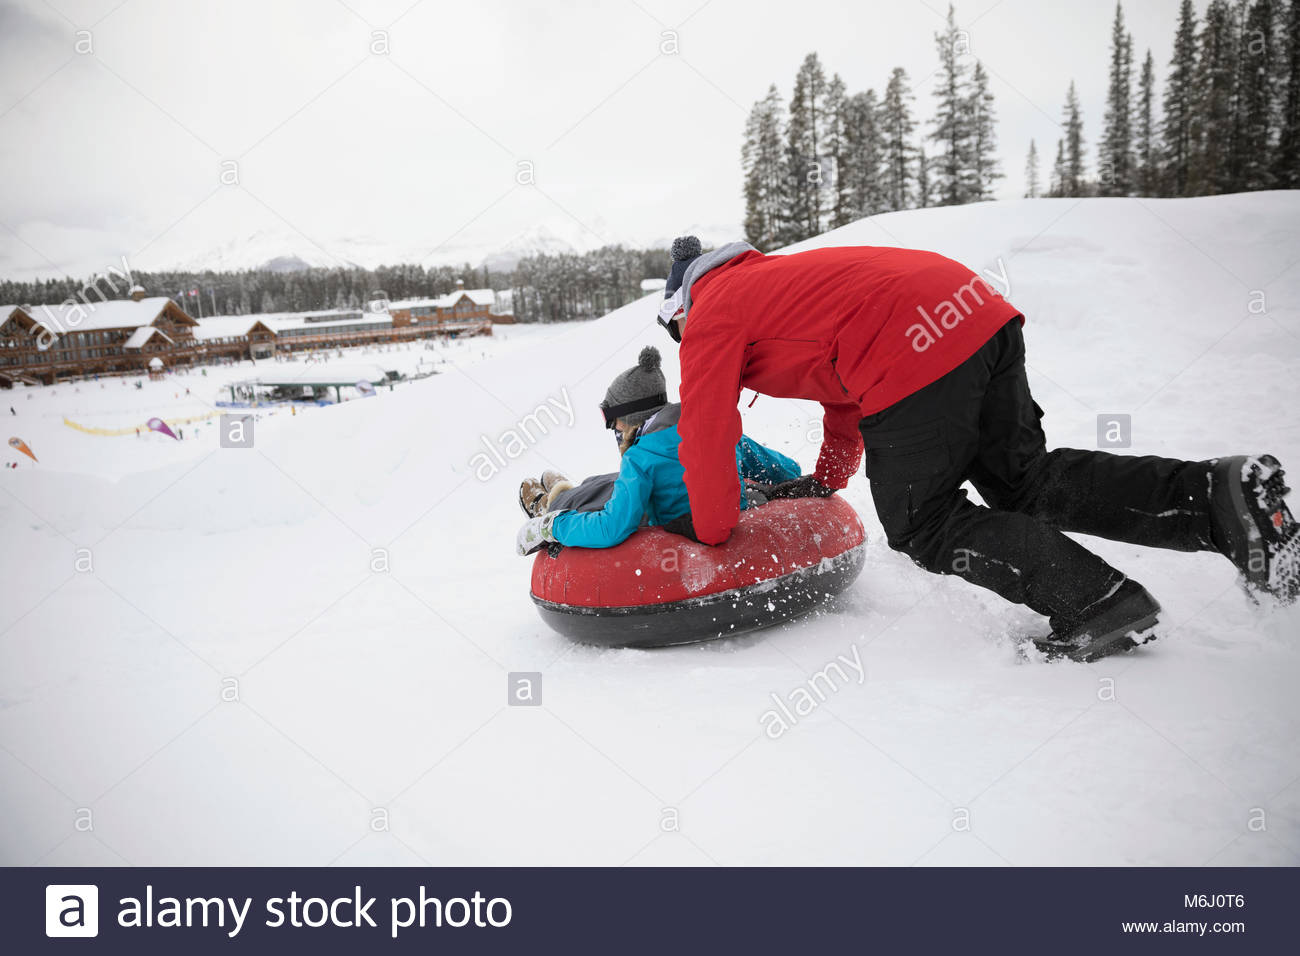 Father pushing daughter in inner tube in snow at tube park - Stock Image